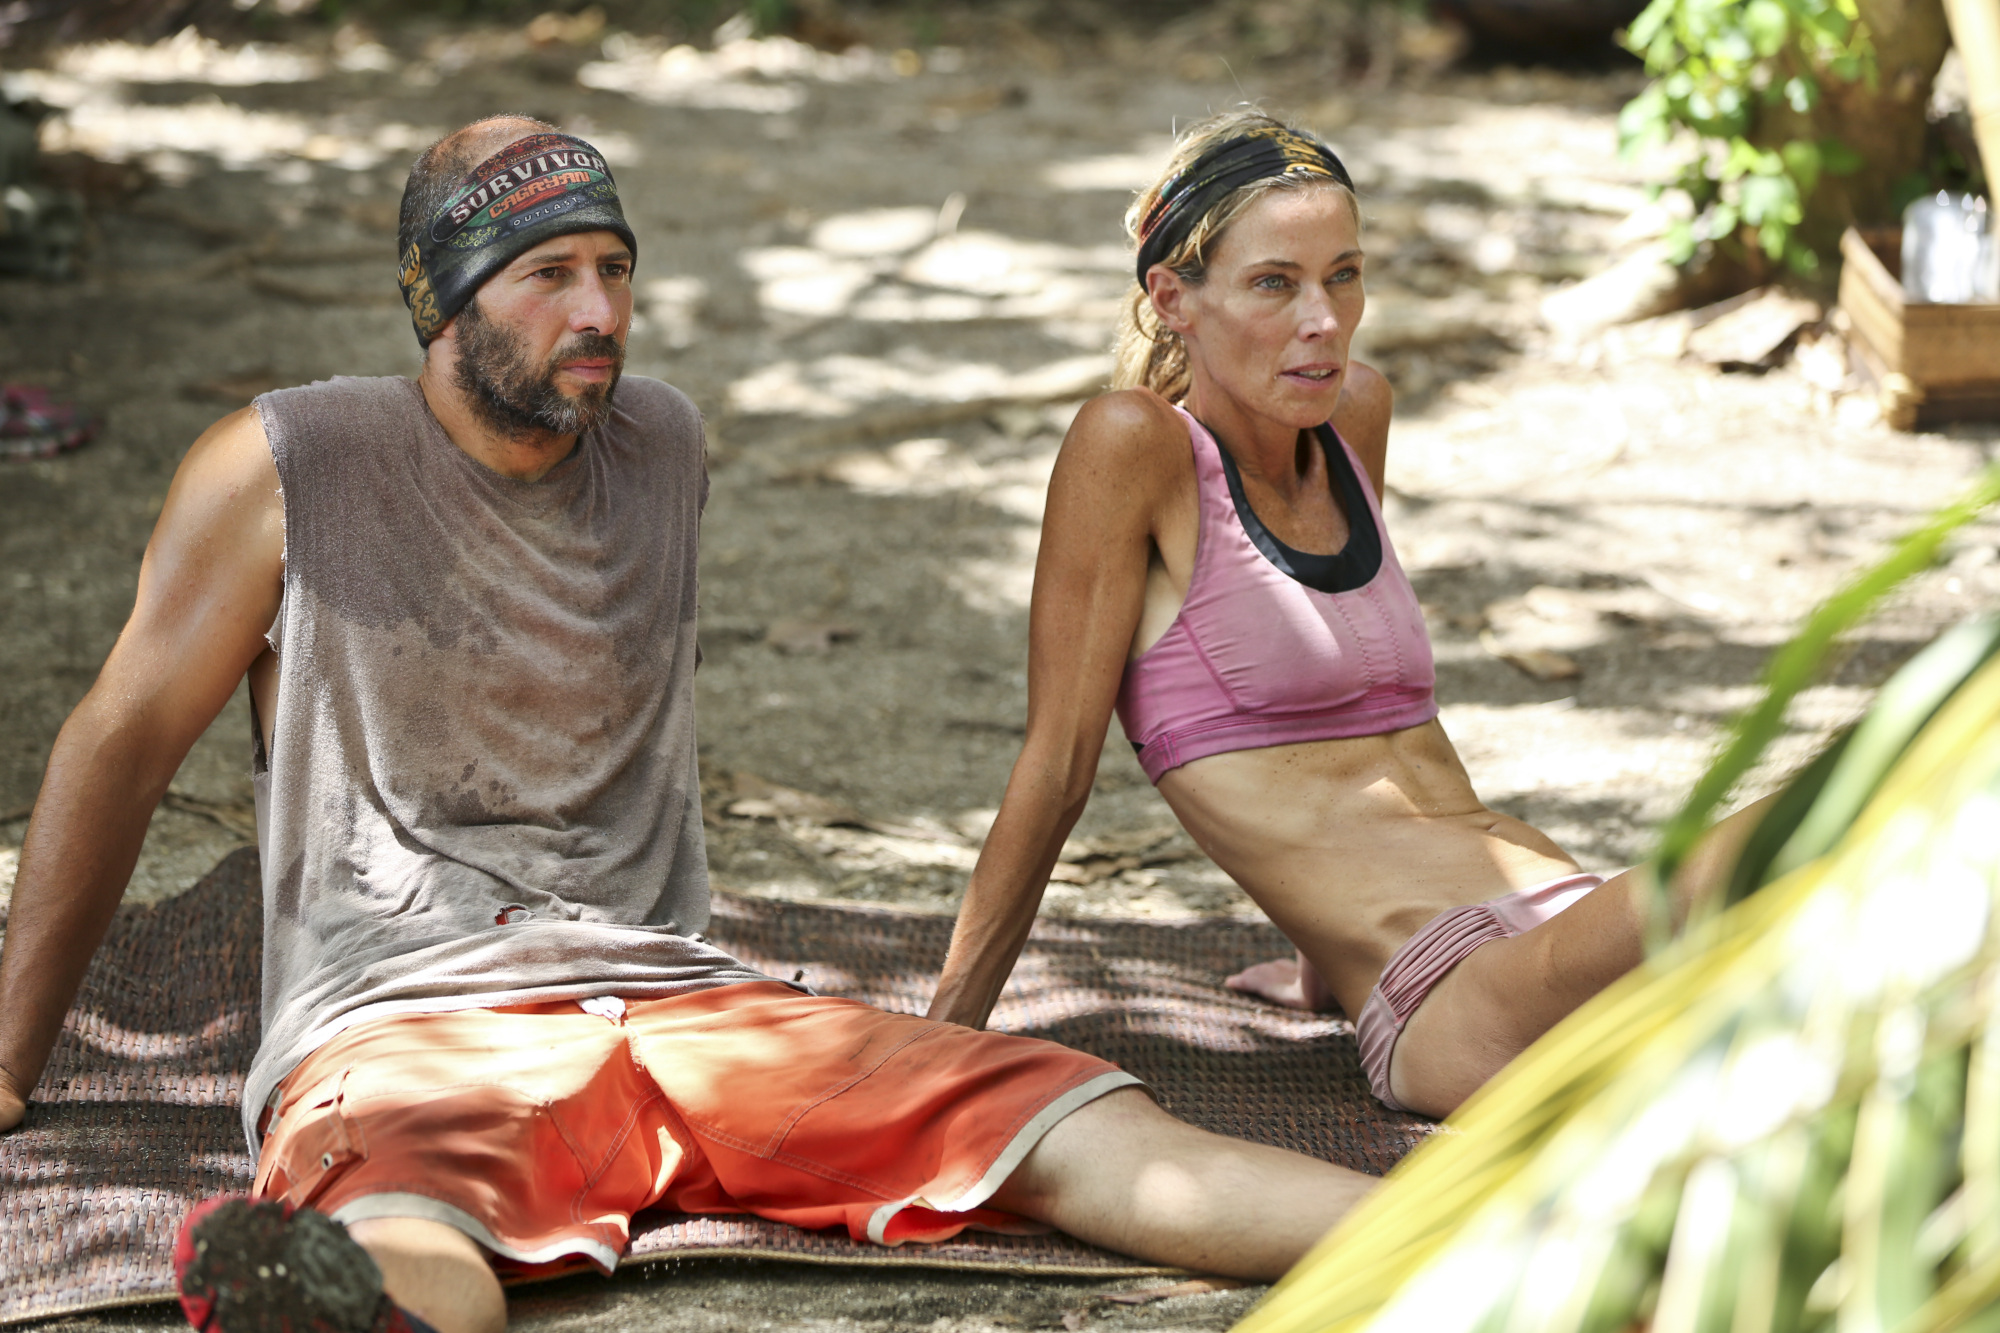 Tony and Trish in Season 28 Episode 9